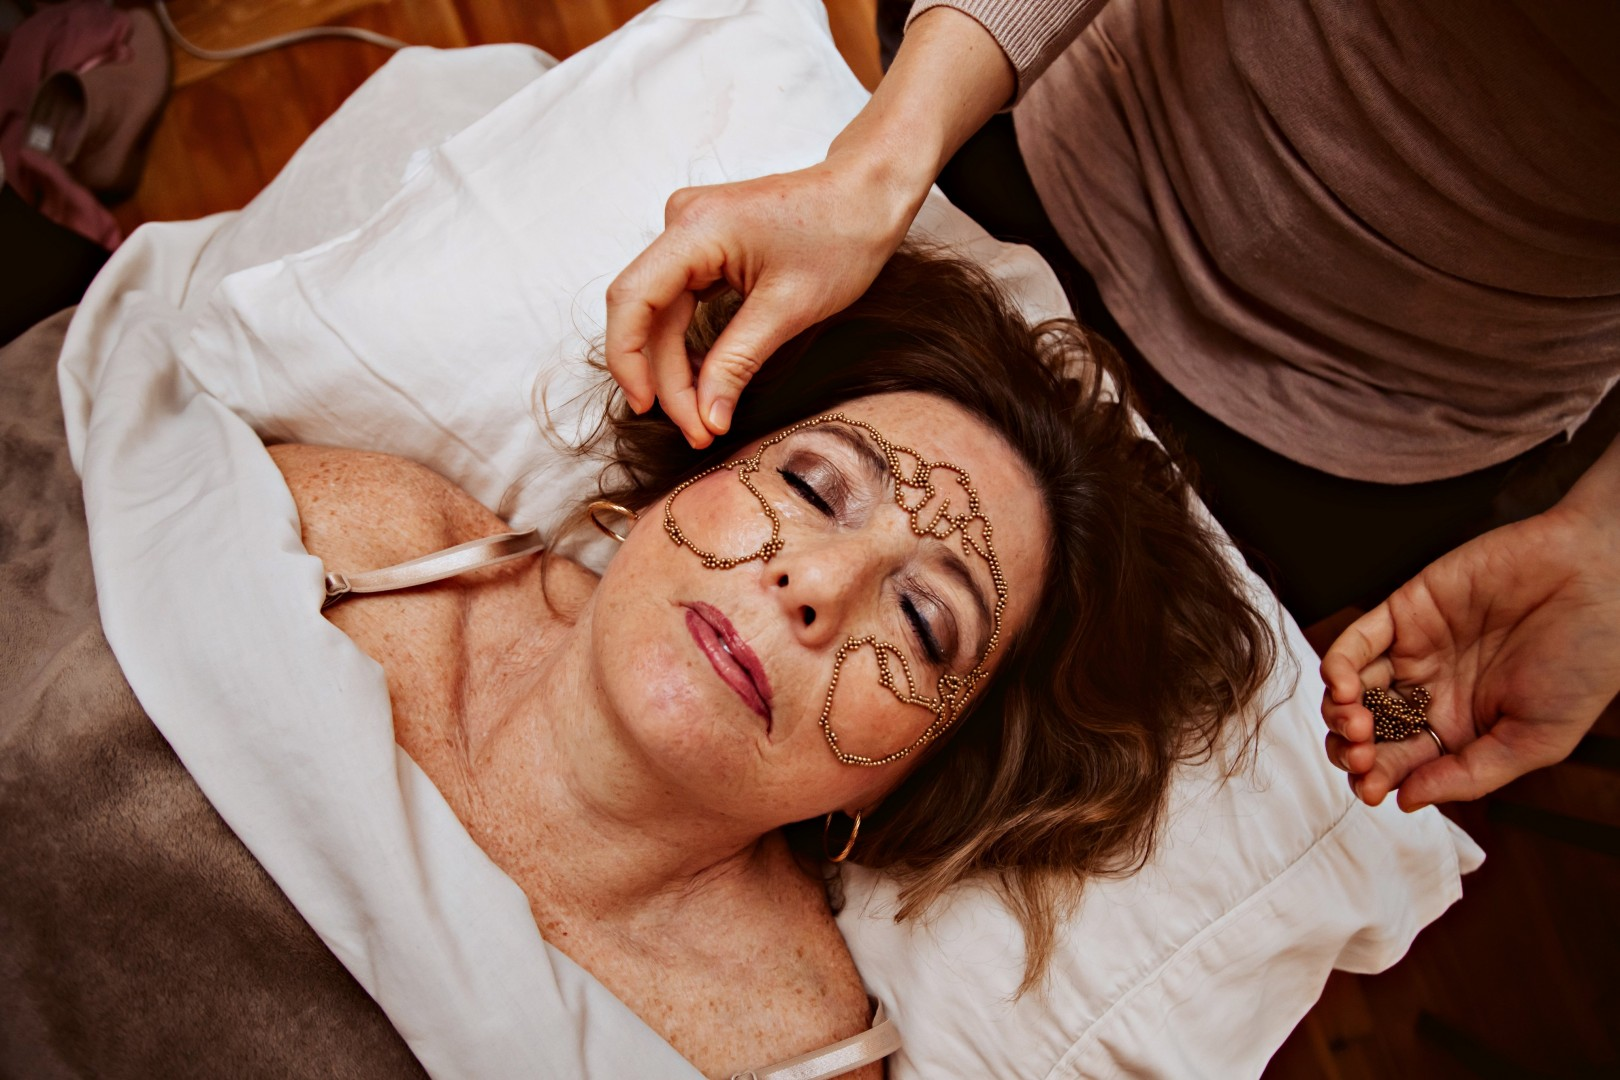 Progressive Healing Institute offers Cosmetic Acupuncture in Nanaimo, BC